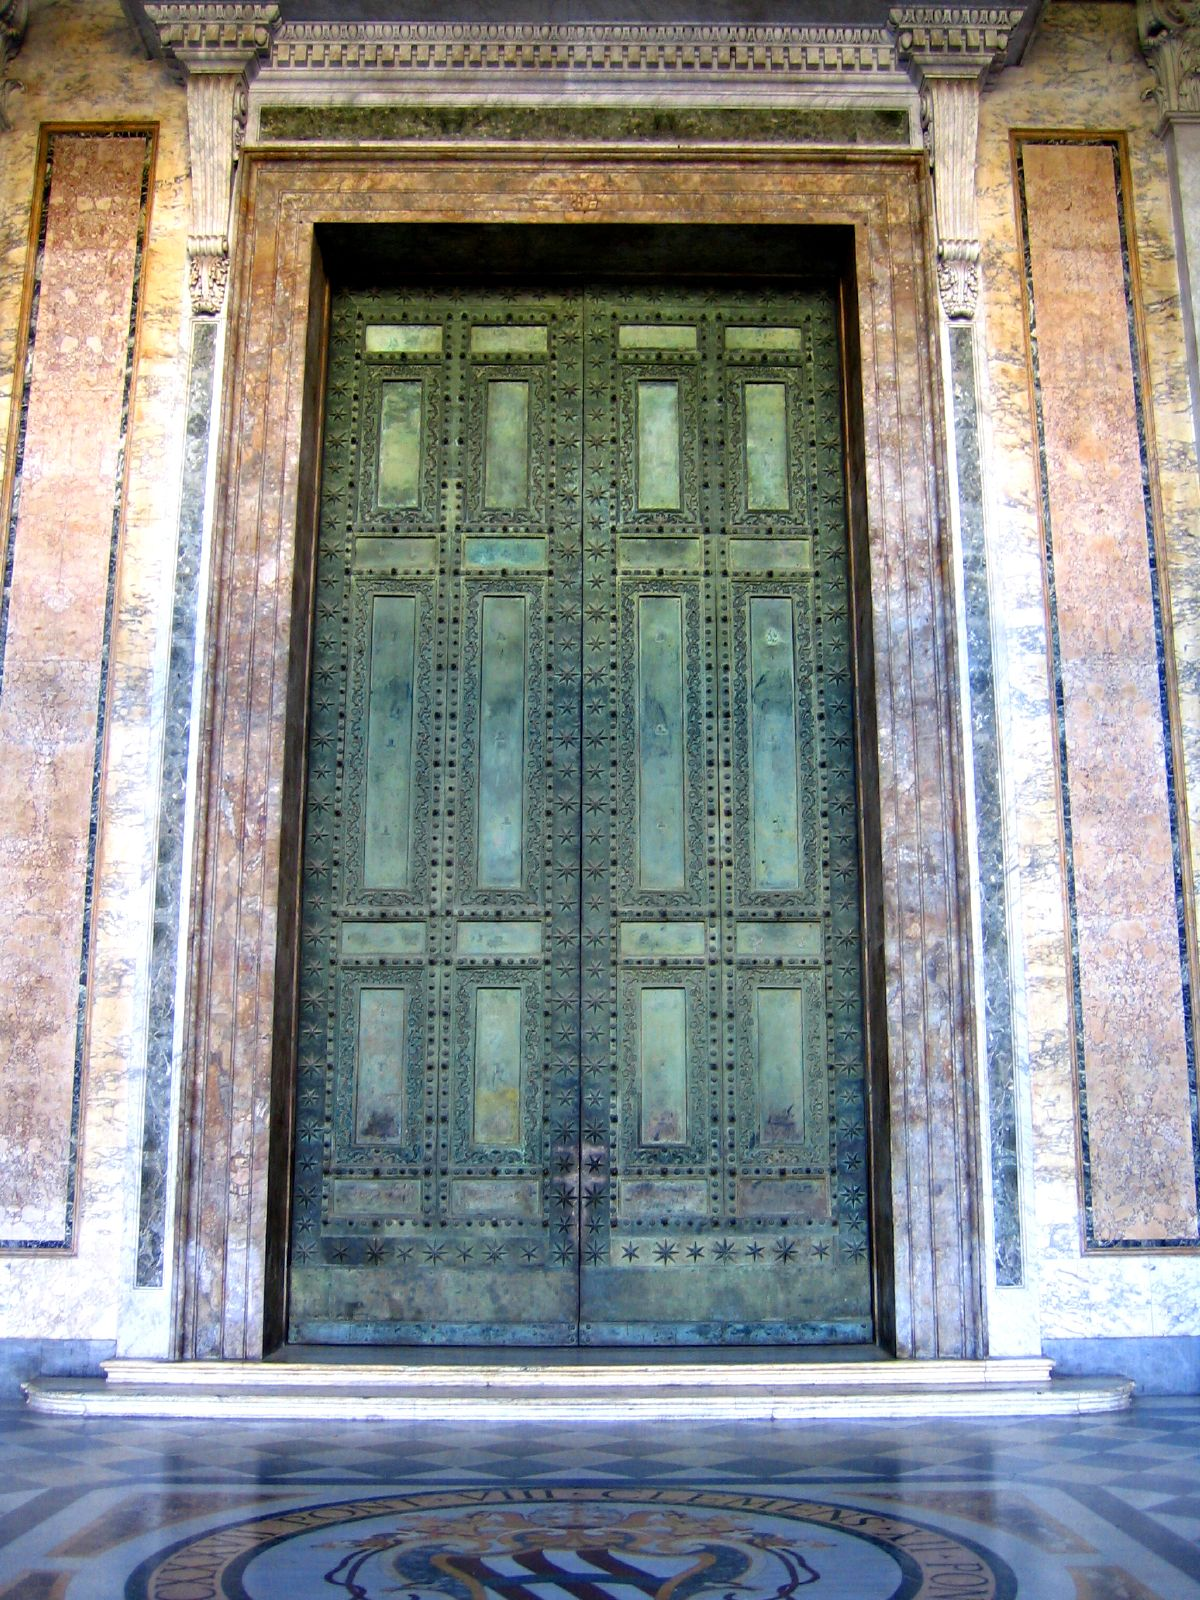 File:Ancient Roman Senate Bronze doors.jpg & File:Ancient Roman Senate Bronze doors.jpg - Wikimedia Commons Pezcame.Com